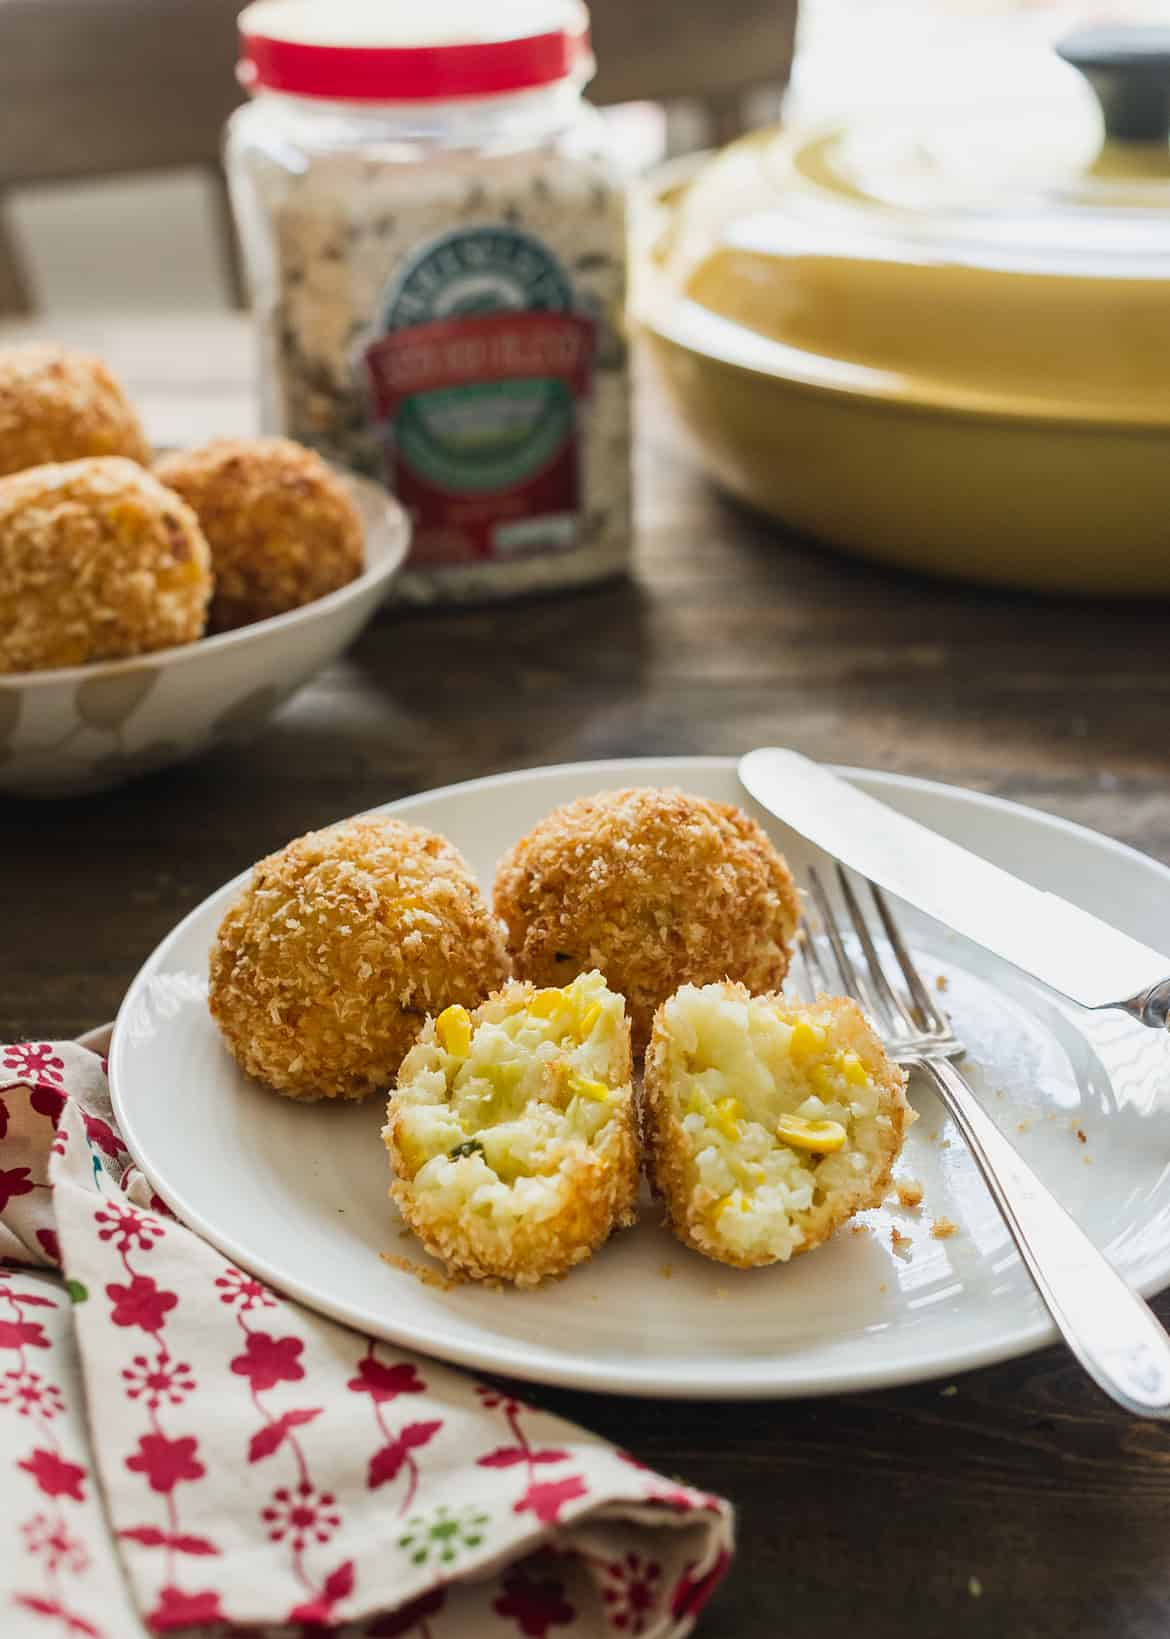 Jalapeño, Corn and Cheddar Arancini split open and served on a plate.